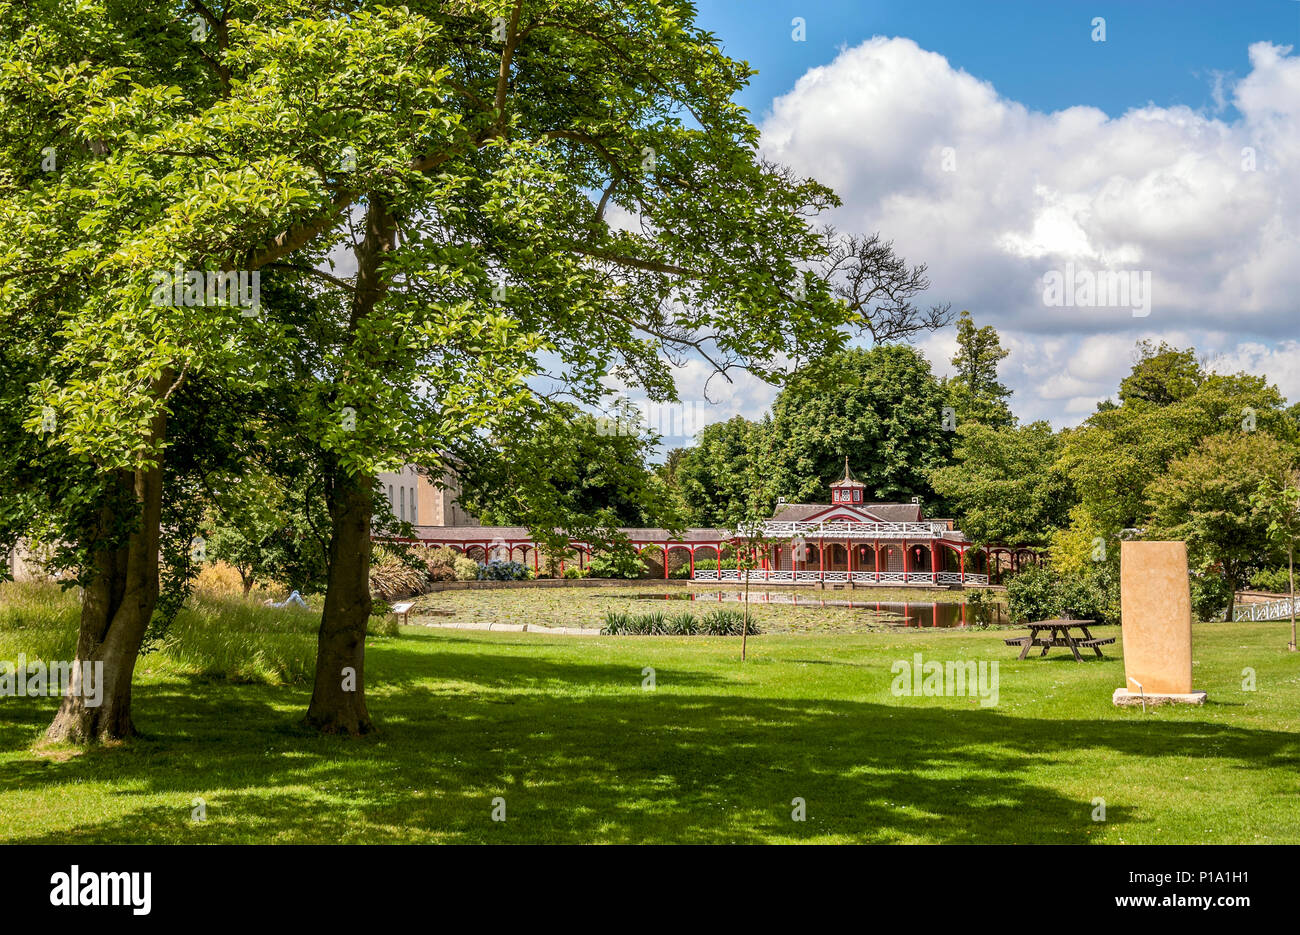 Gartenarchitekt England The Chinese Pond And House At Woburn Abbey And Gardens Near